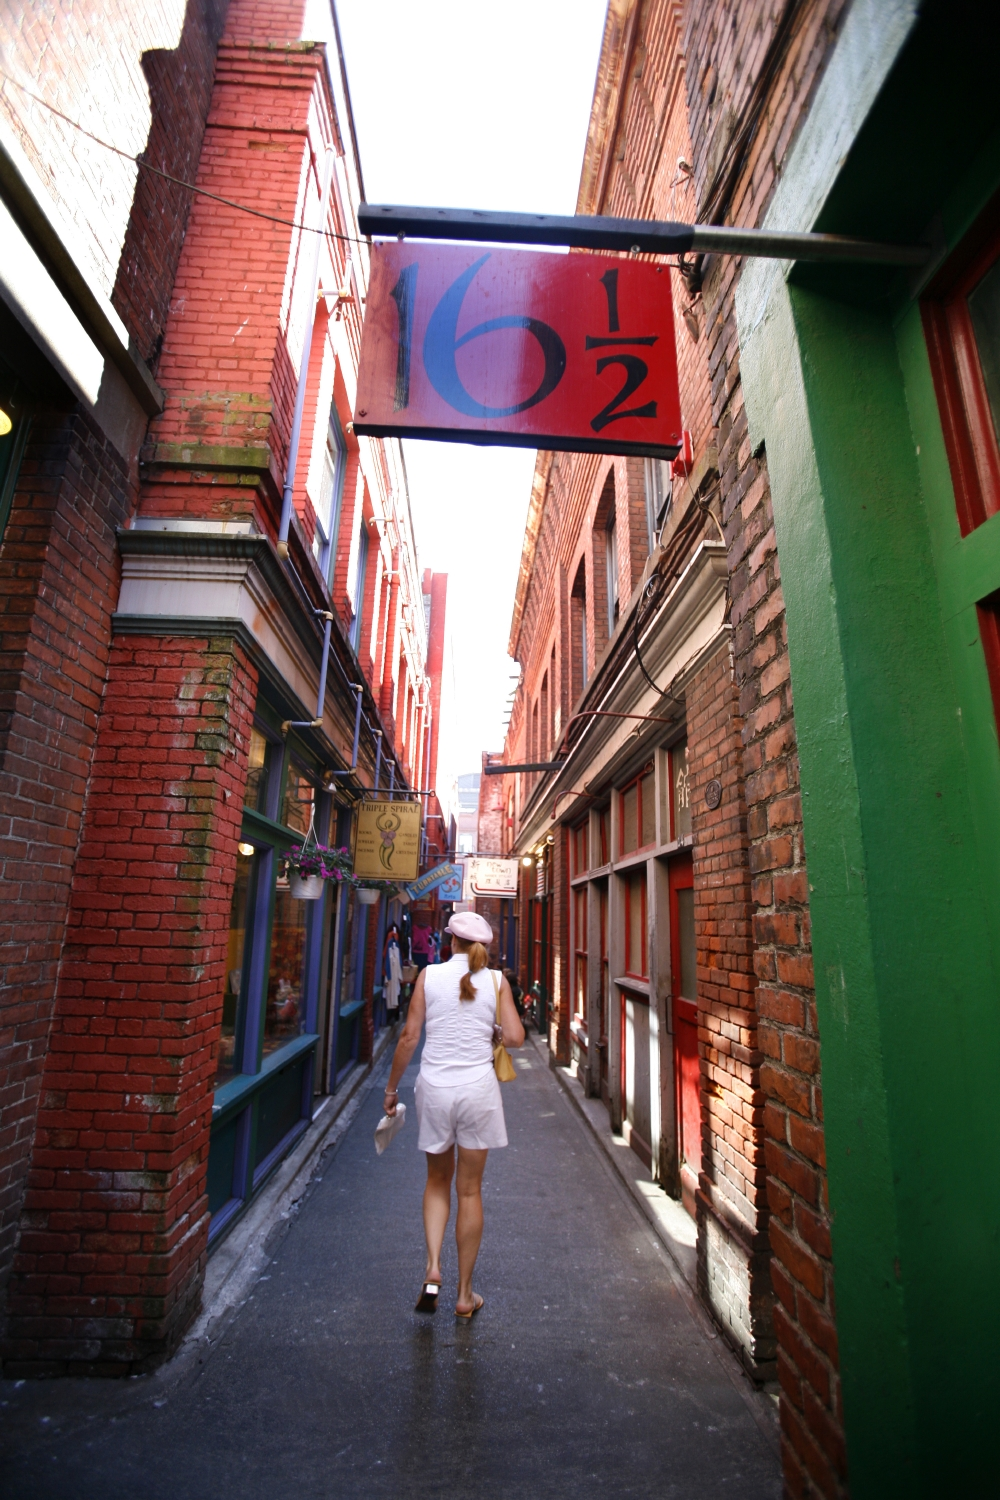 Explore historic alleyways steeped in culture.